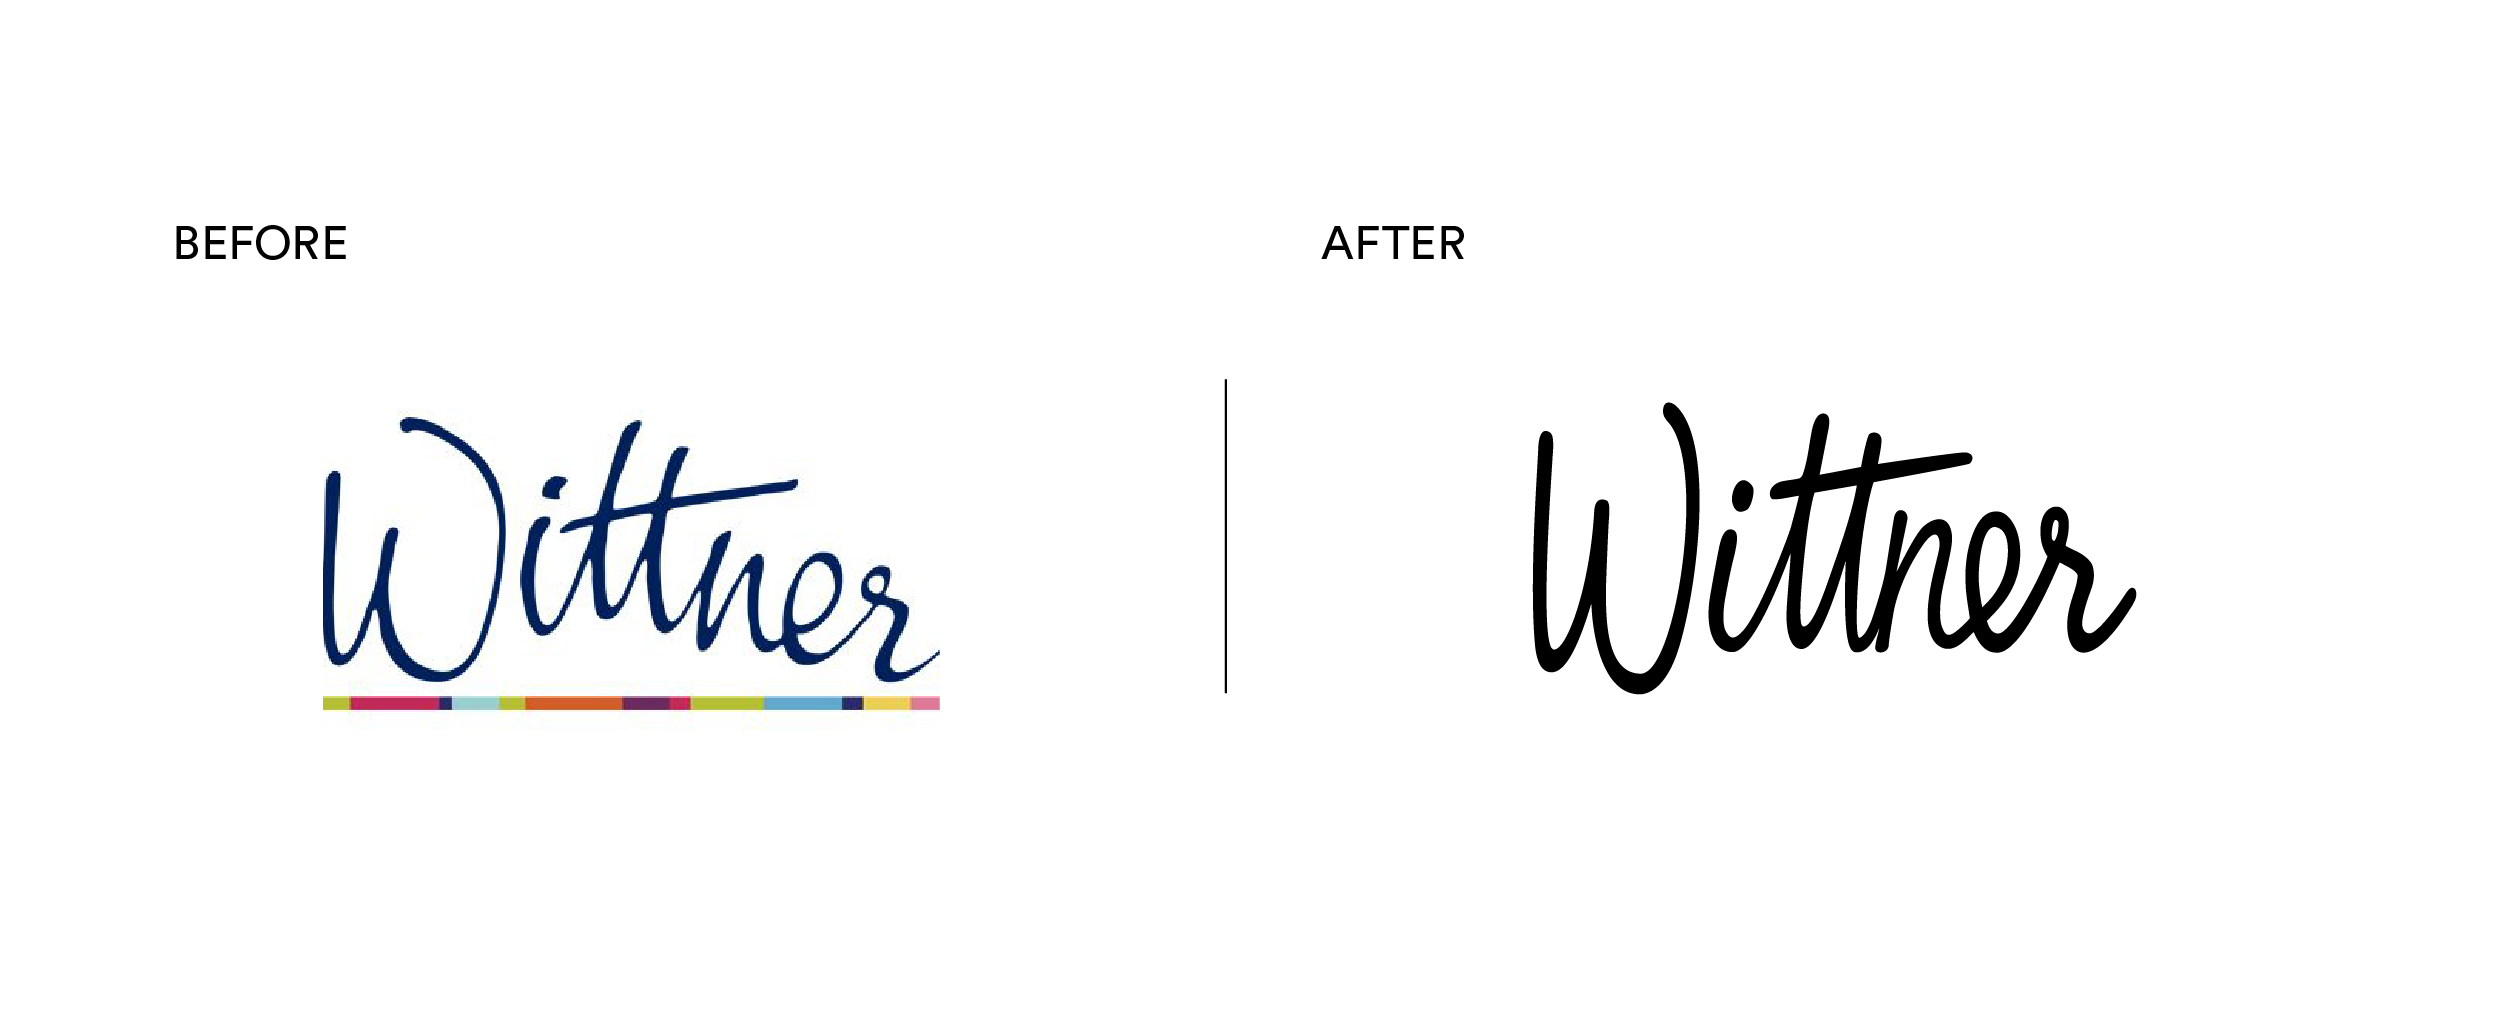 Wittner Brand Mark old logo and new Brand Mark after brand rebrand